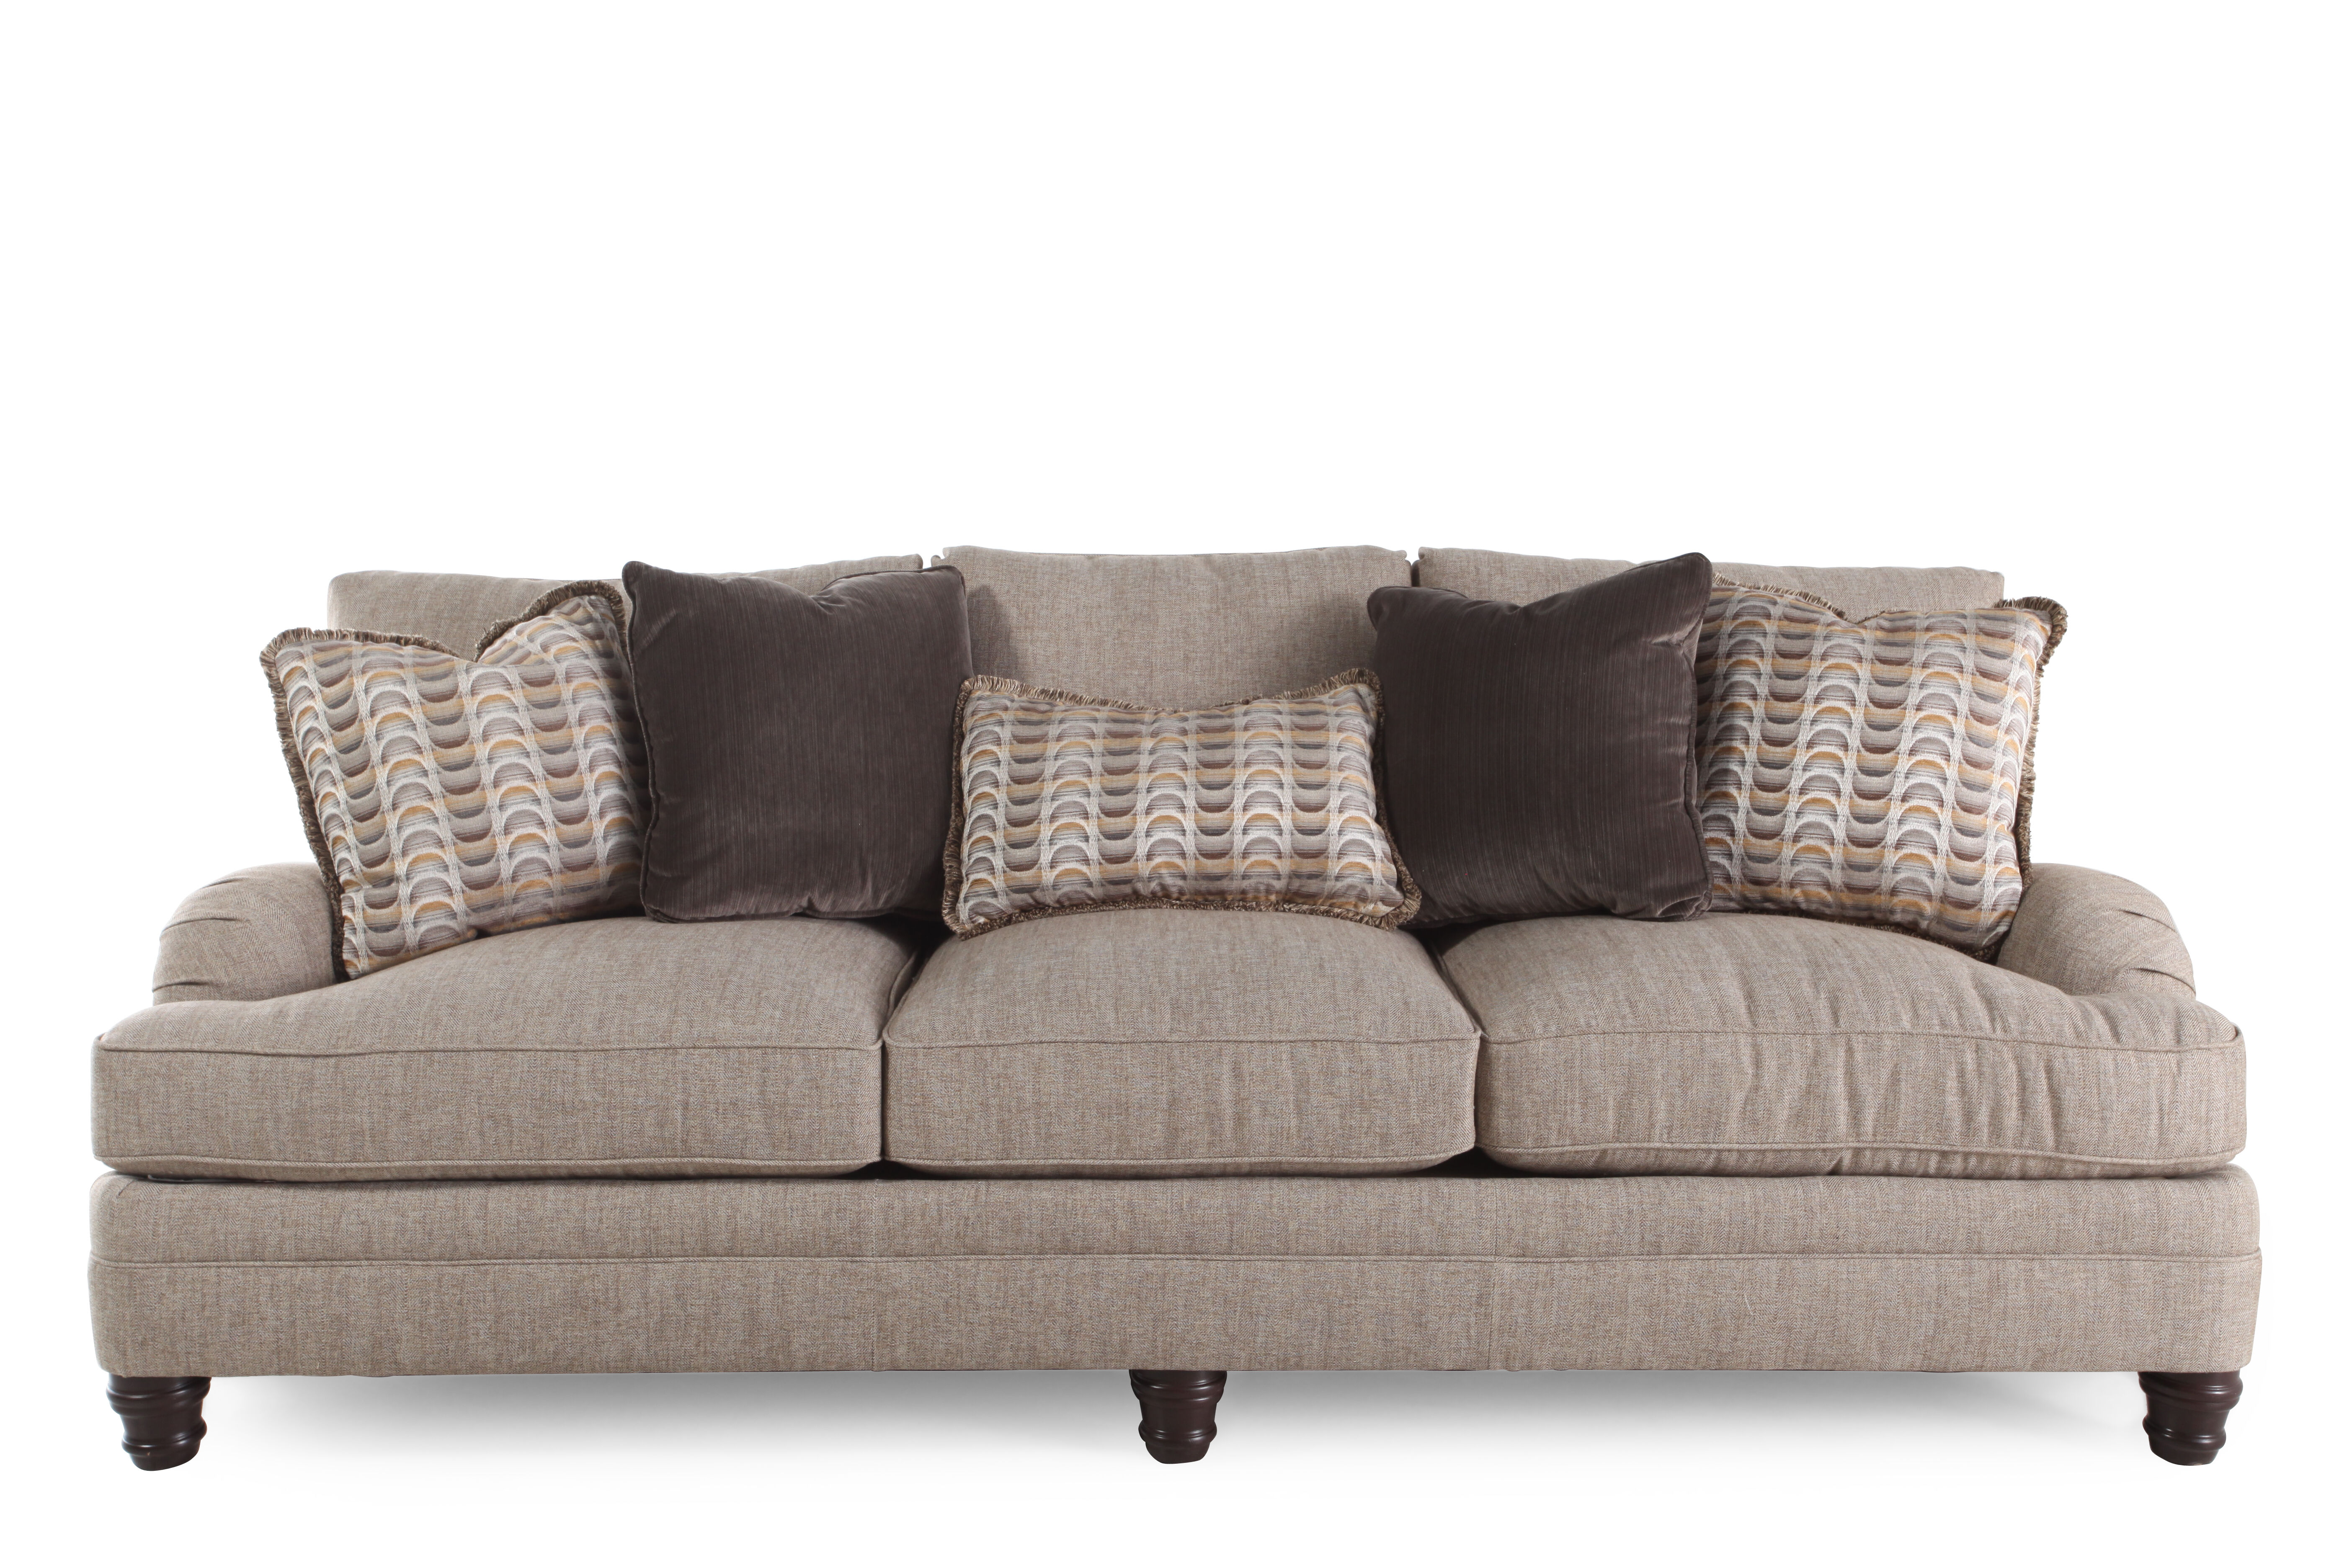 European Classic 965 Sofa in Sandy Brown Mathis Brothers Furniture